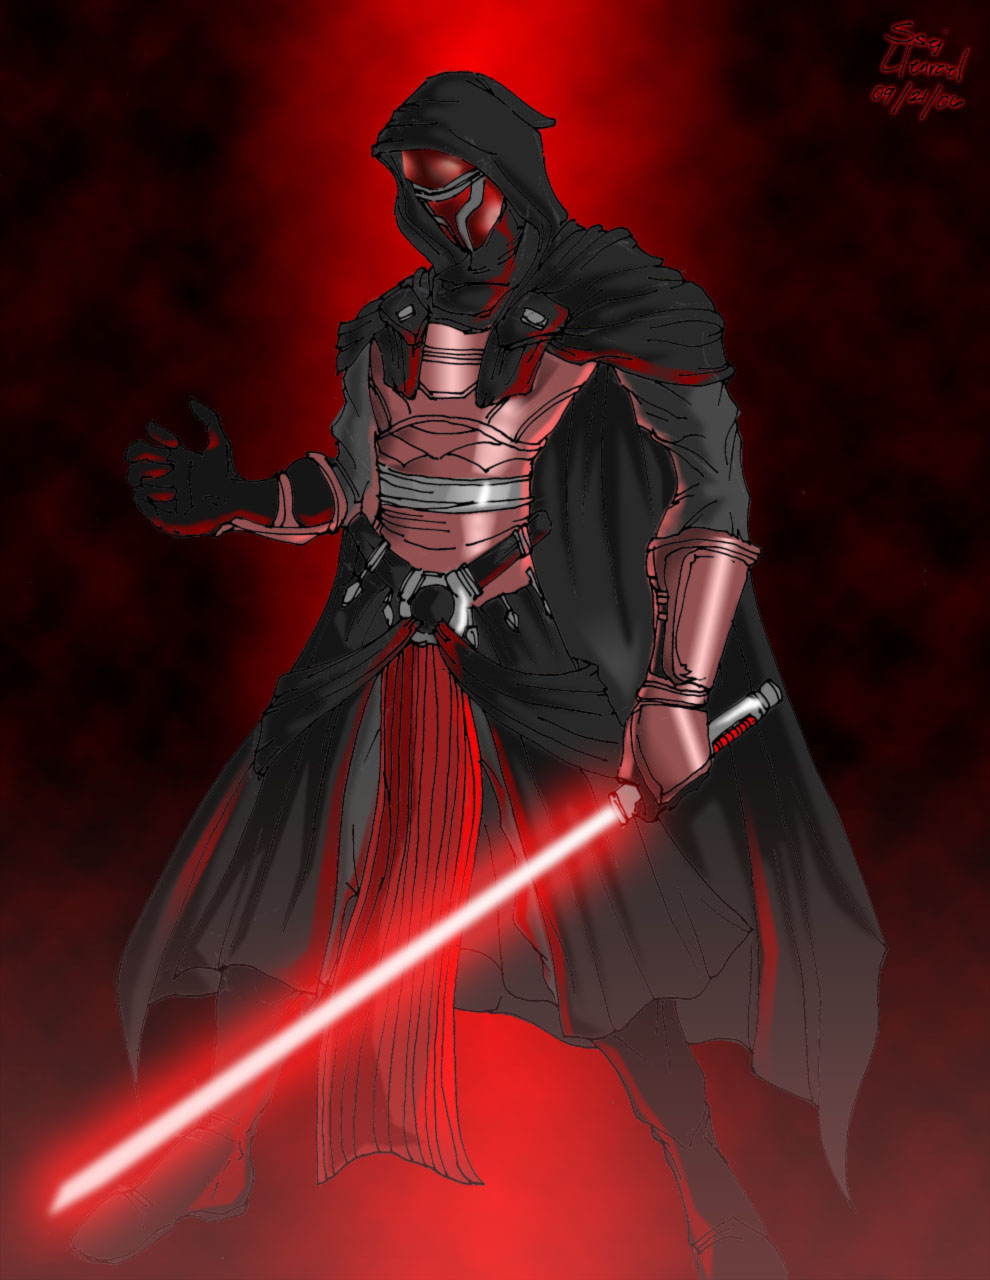 Dark-Lord-Of-The-Sith-Darth-Revan-wallpaper-wp5804928